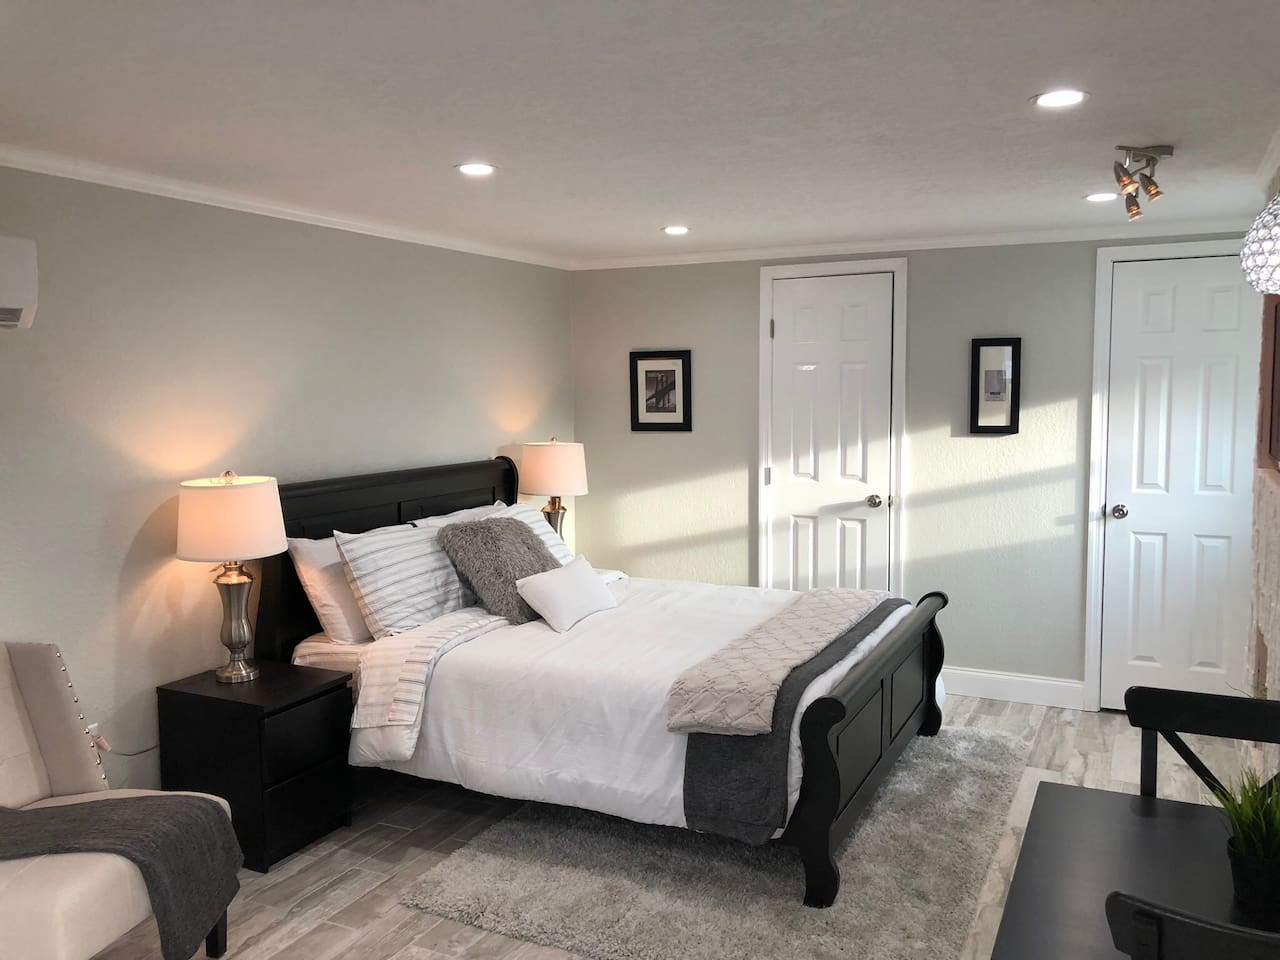 Enjoy a great night's sleep on a comfortable memory foam mattress in this cozy space.